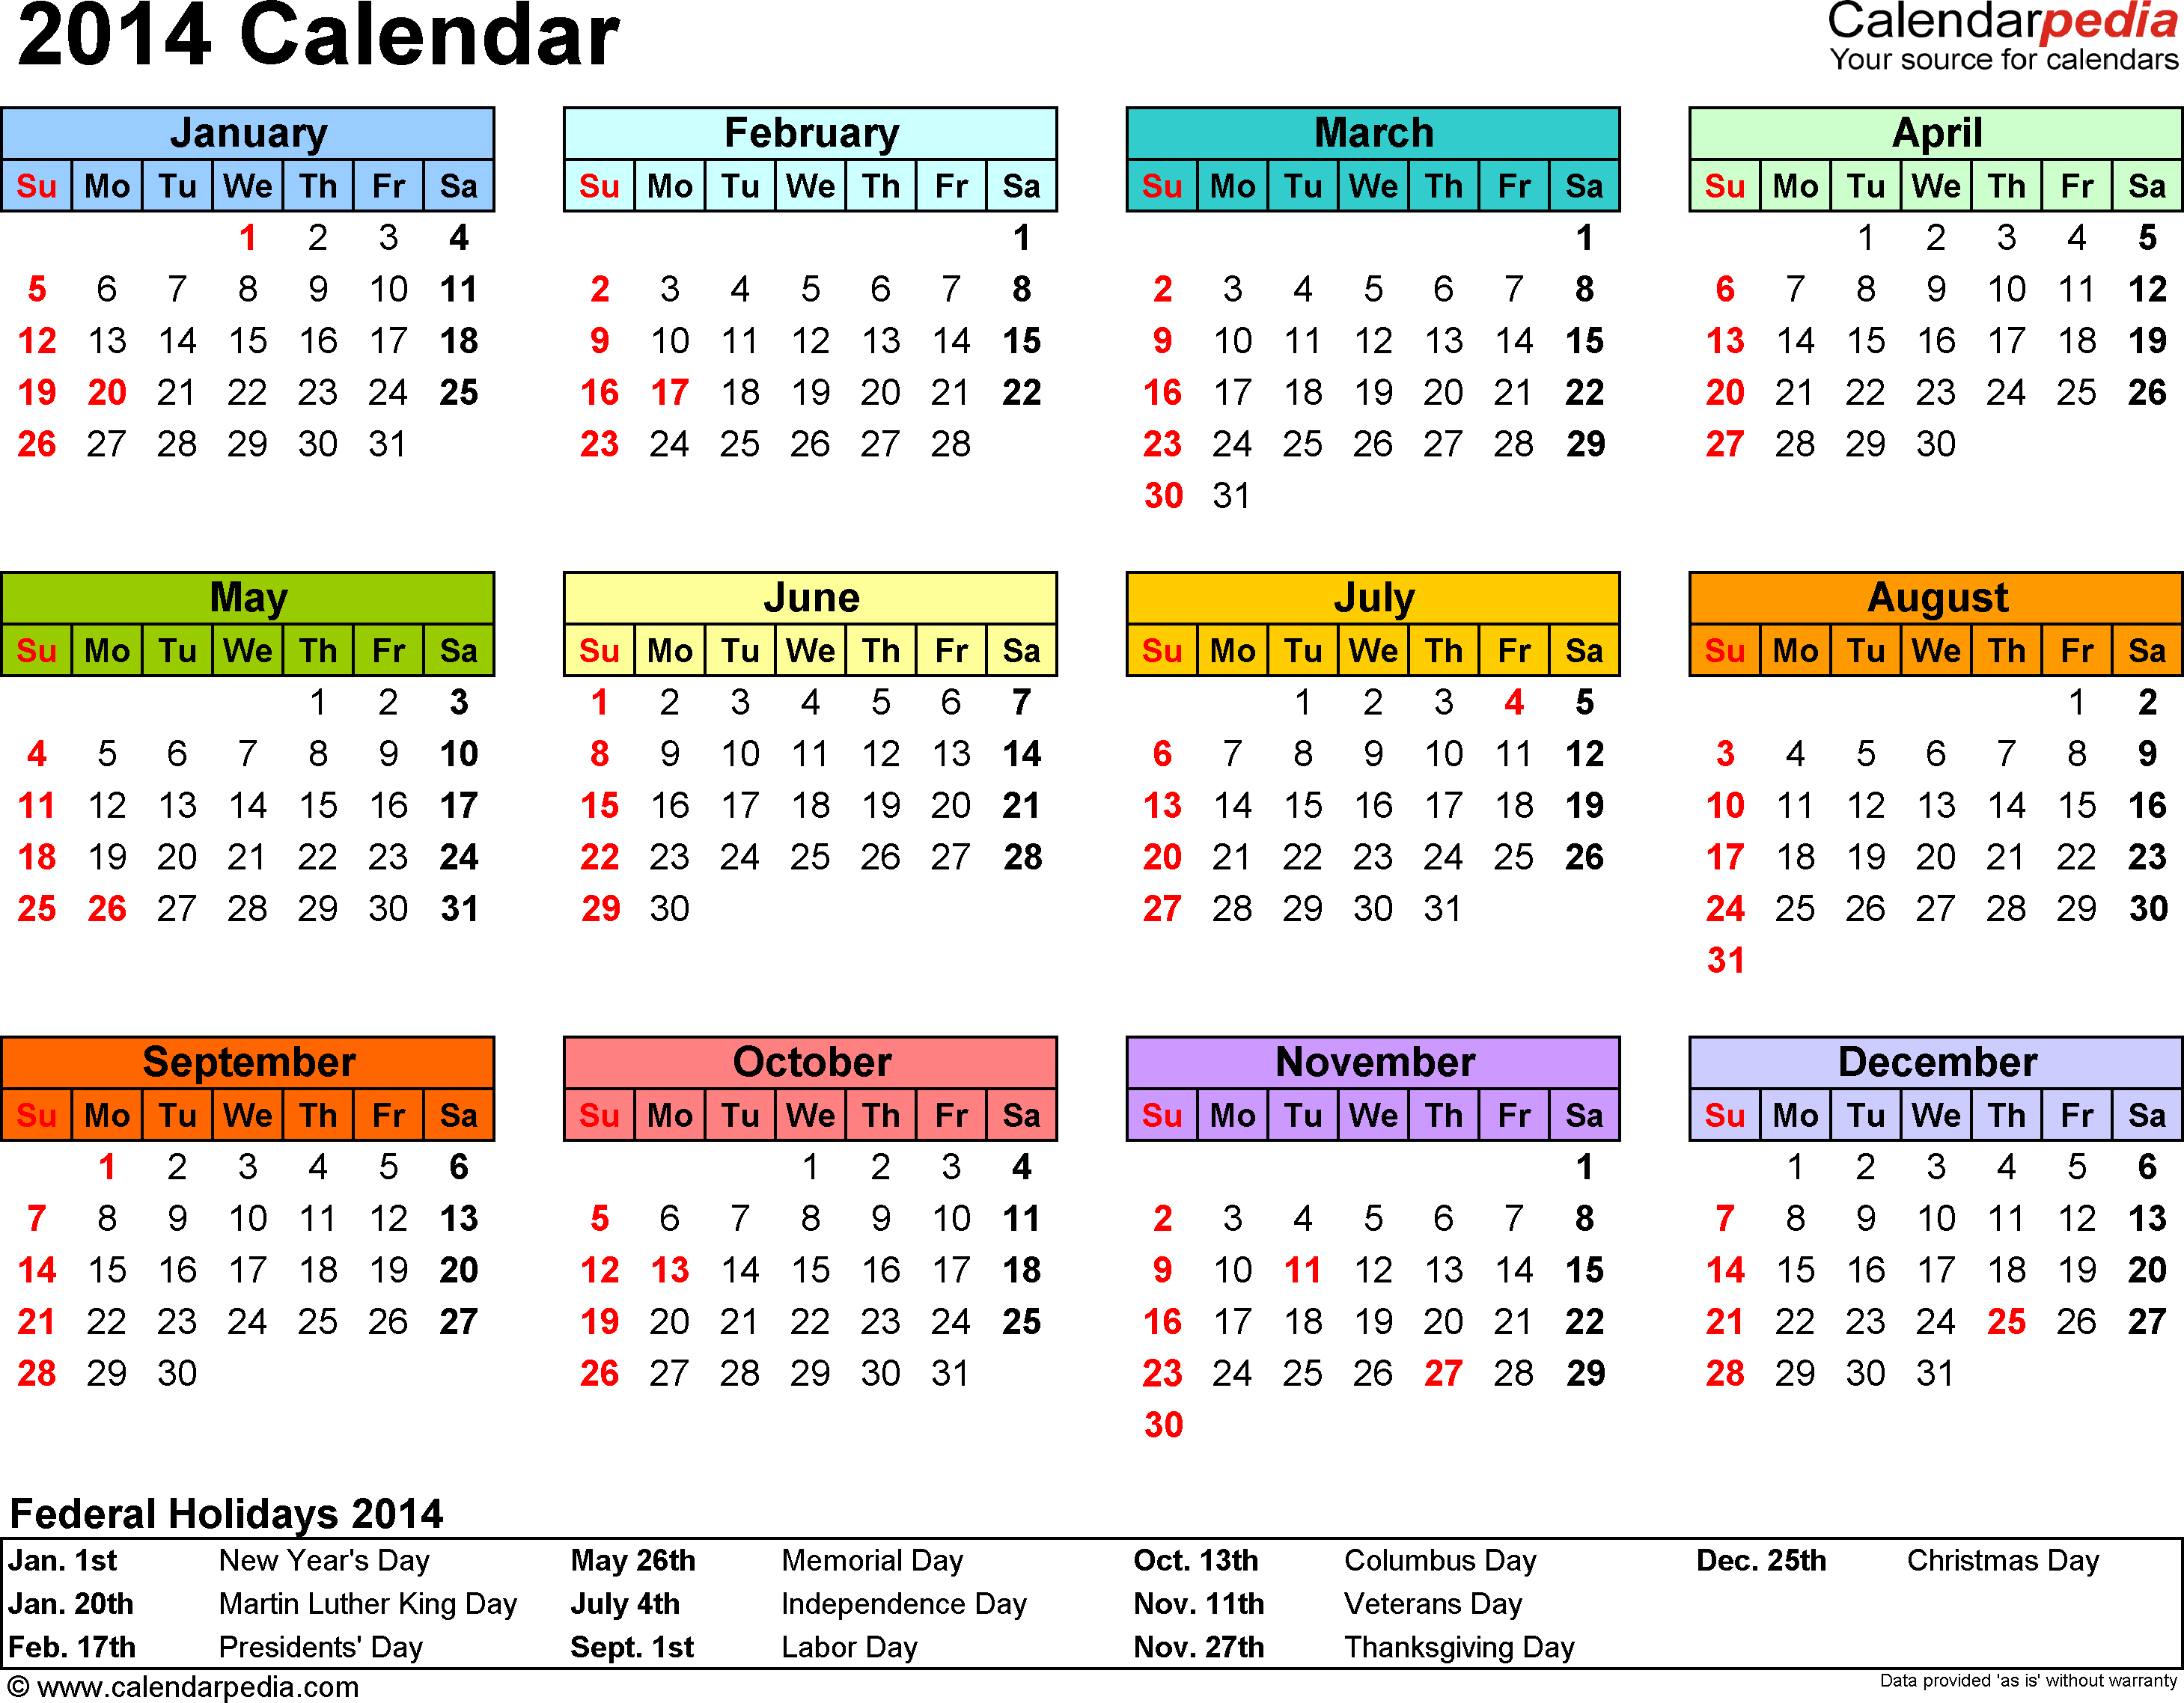 2014 Calendar PDF 13 free printable calendar templates for PDF